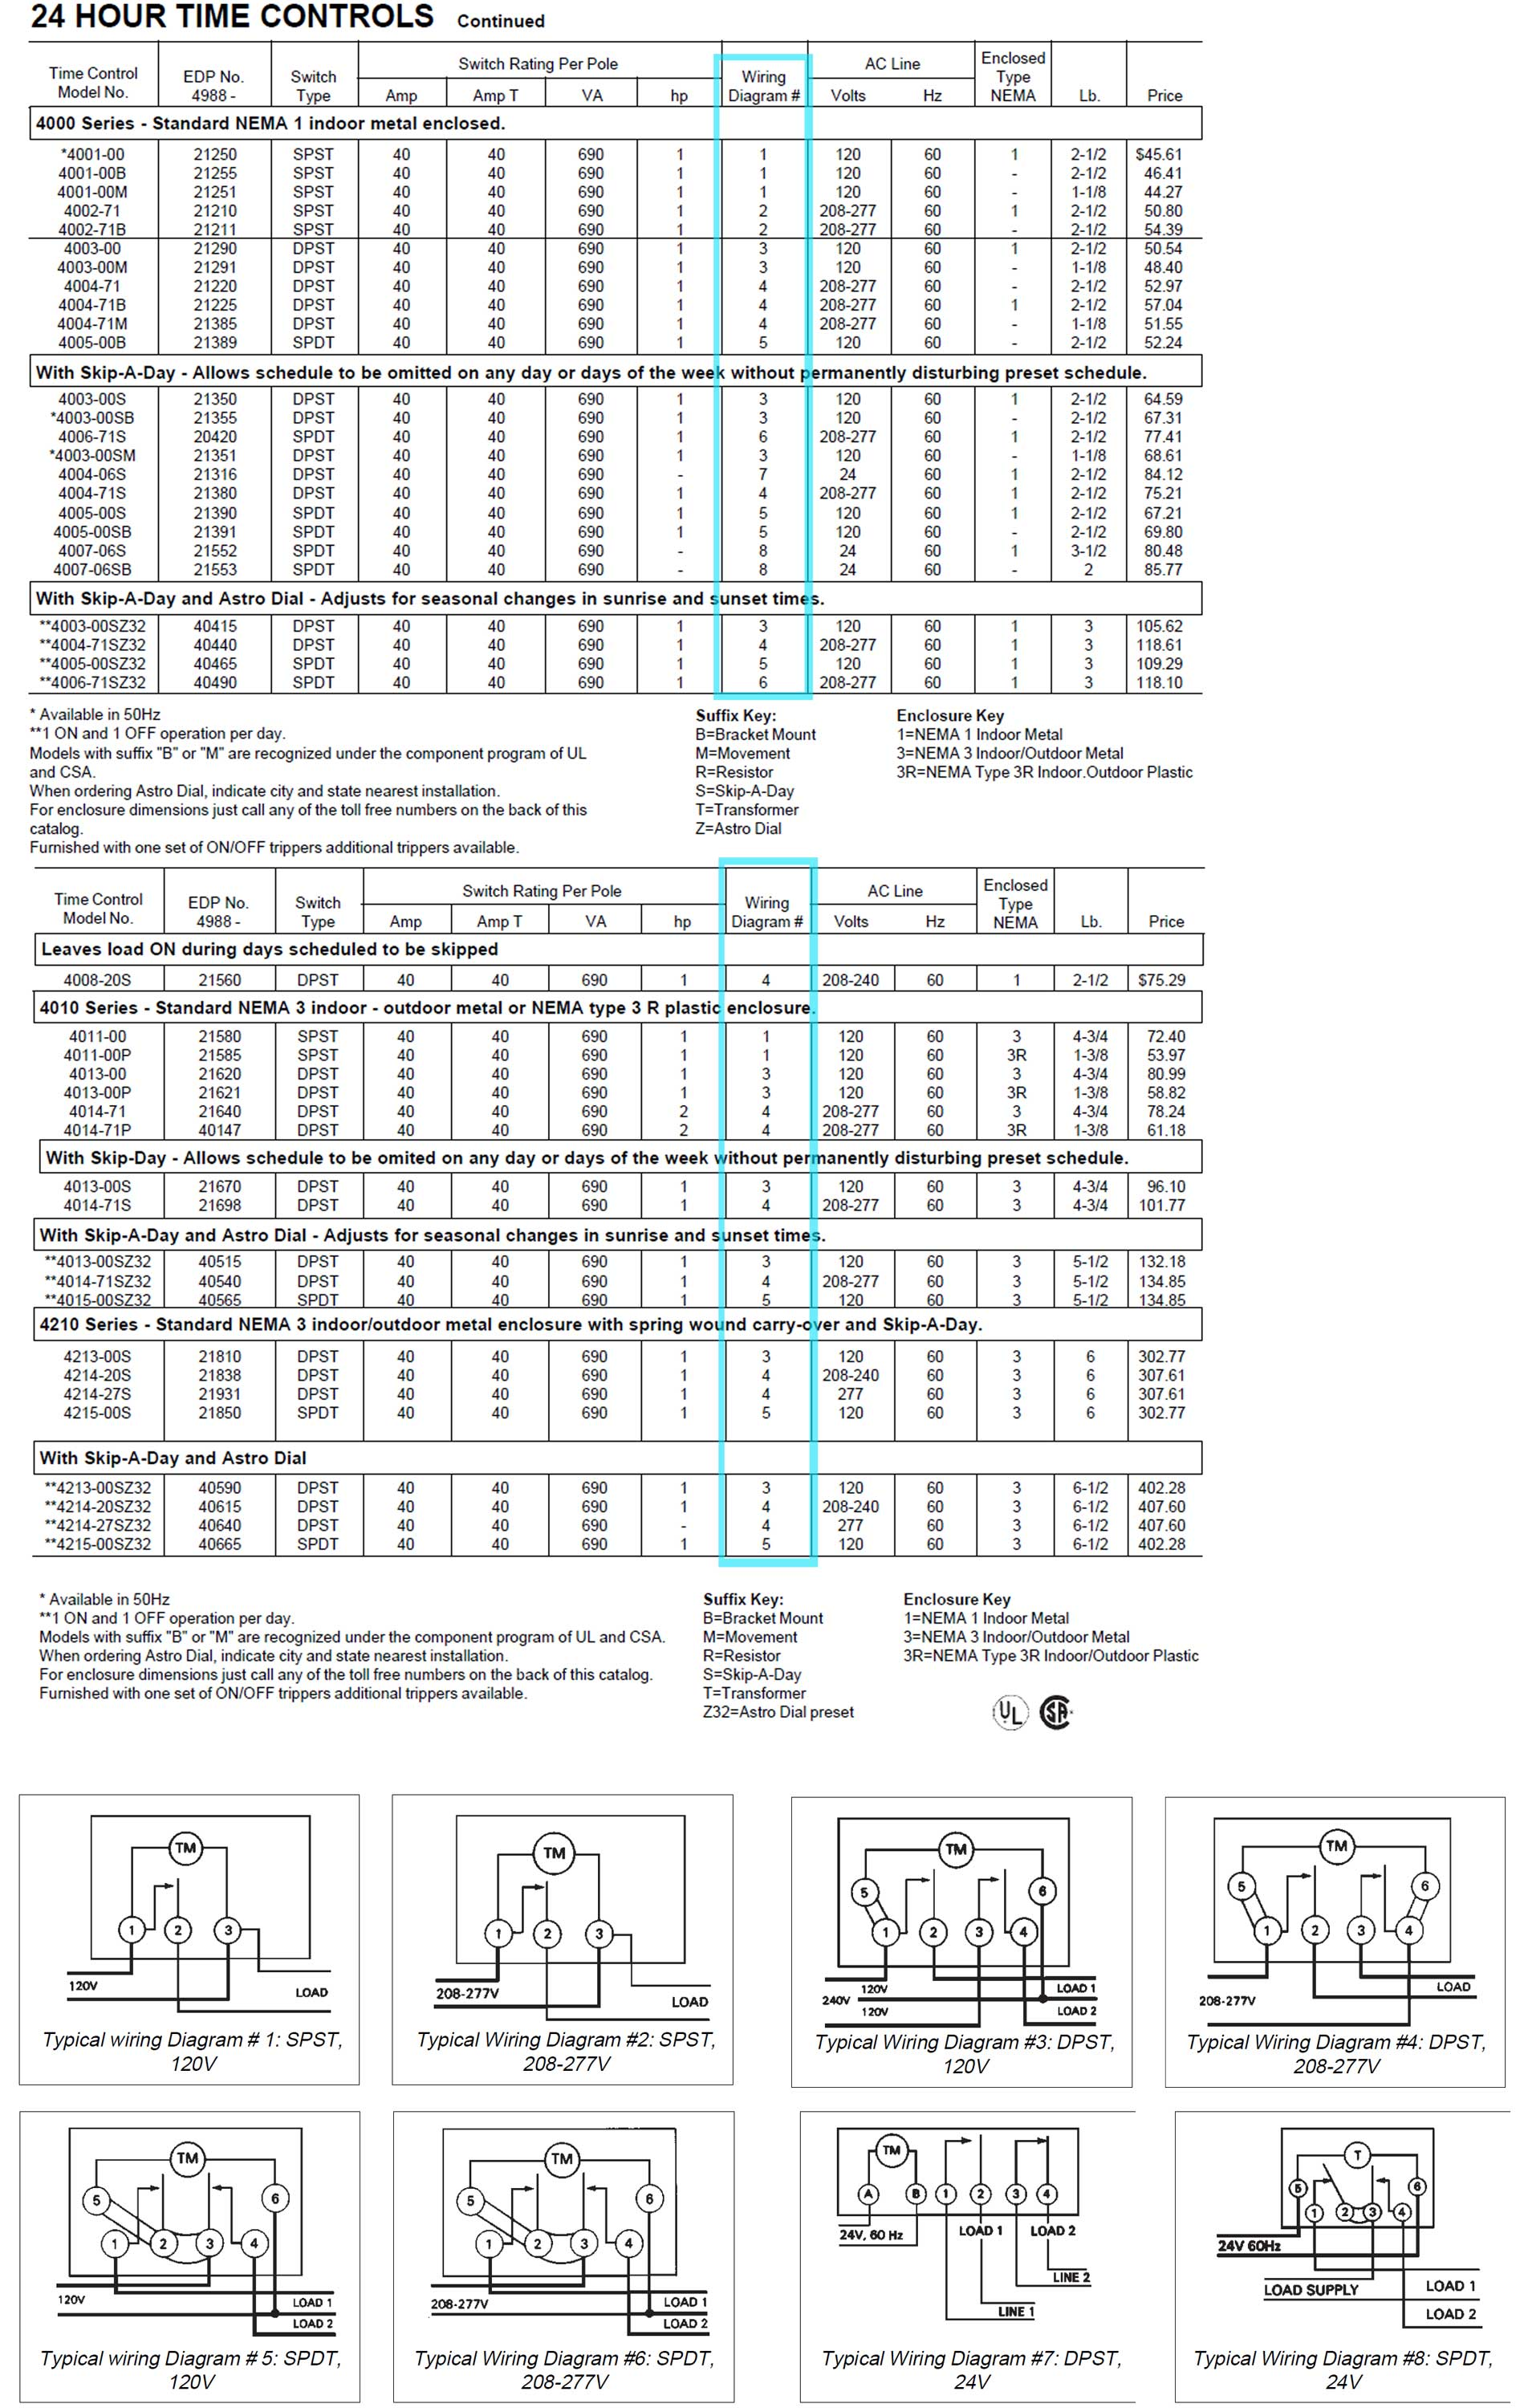 Different models offer skip-a-day & Astro-dial for seasonal adjustments.  Resources: Paragon series sell sheet · Paragon 4000 series wiring diagrams